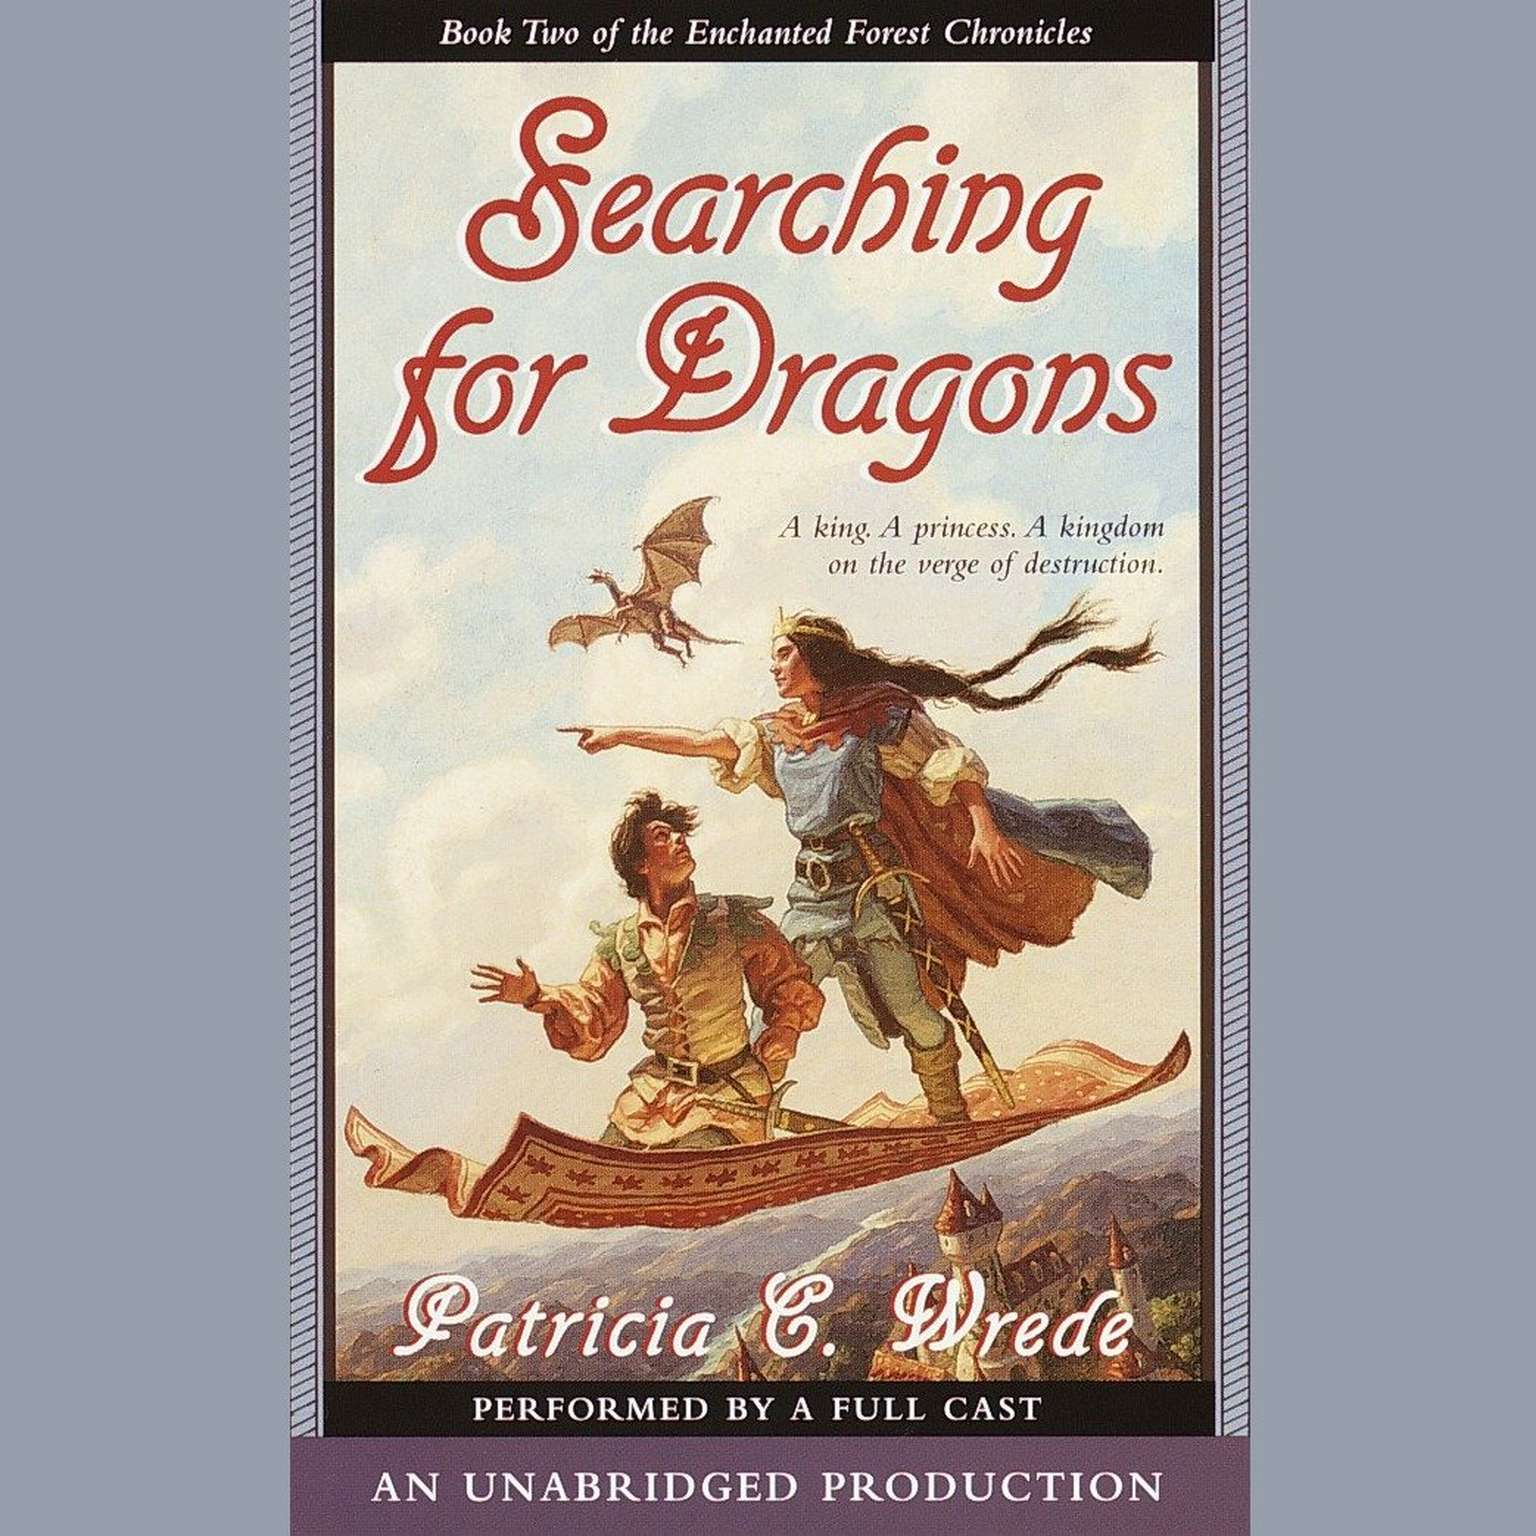 Printable The Enchanted Forest Chronicles Book Two: Searching for Dragons Audiobook Cover Art